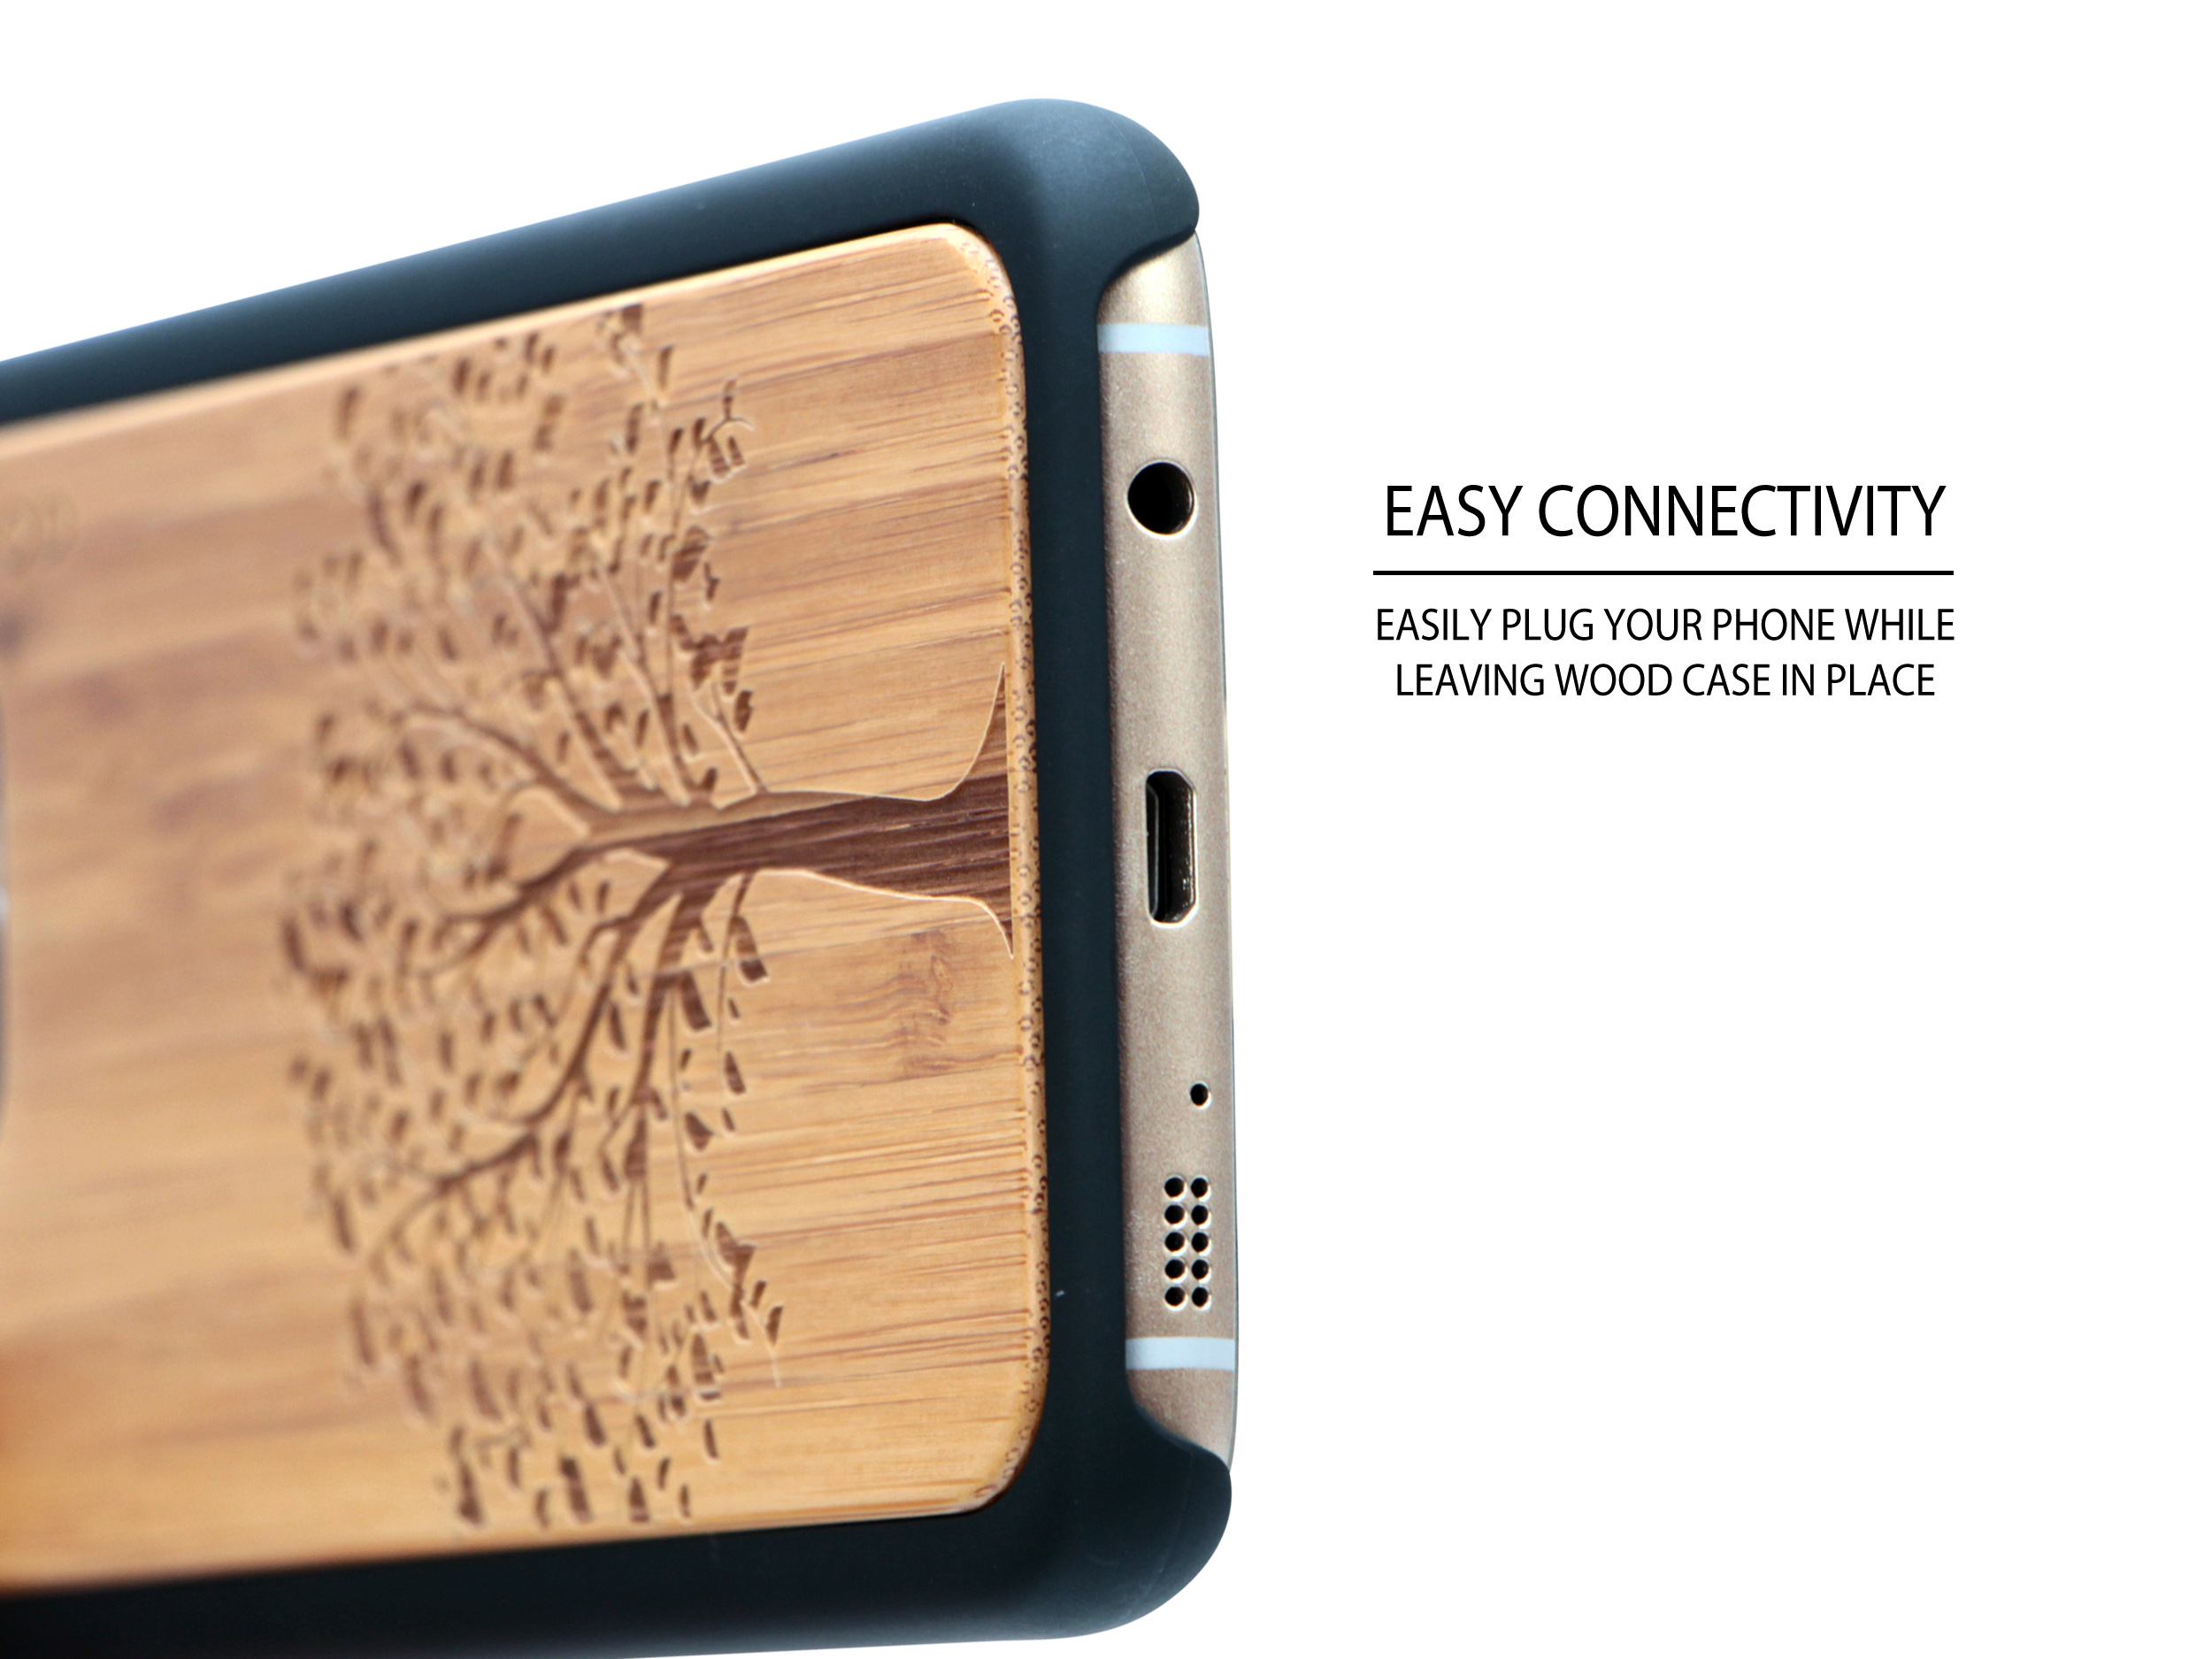 Samsung Galaxy S7 Edge wood case tree socket